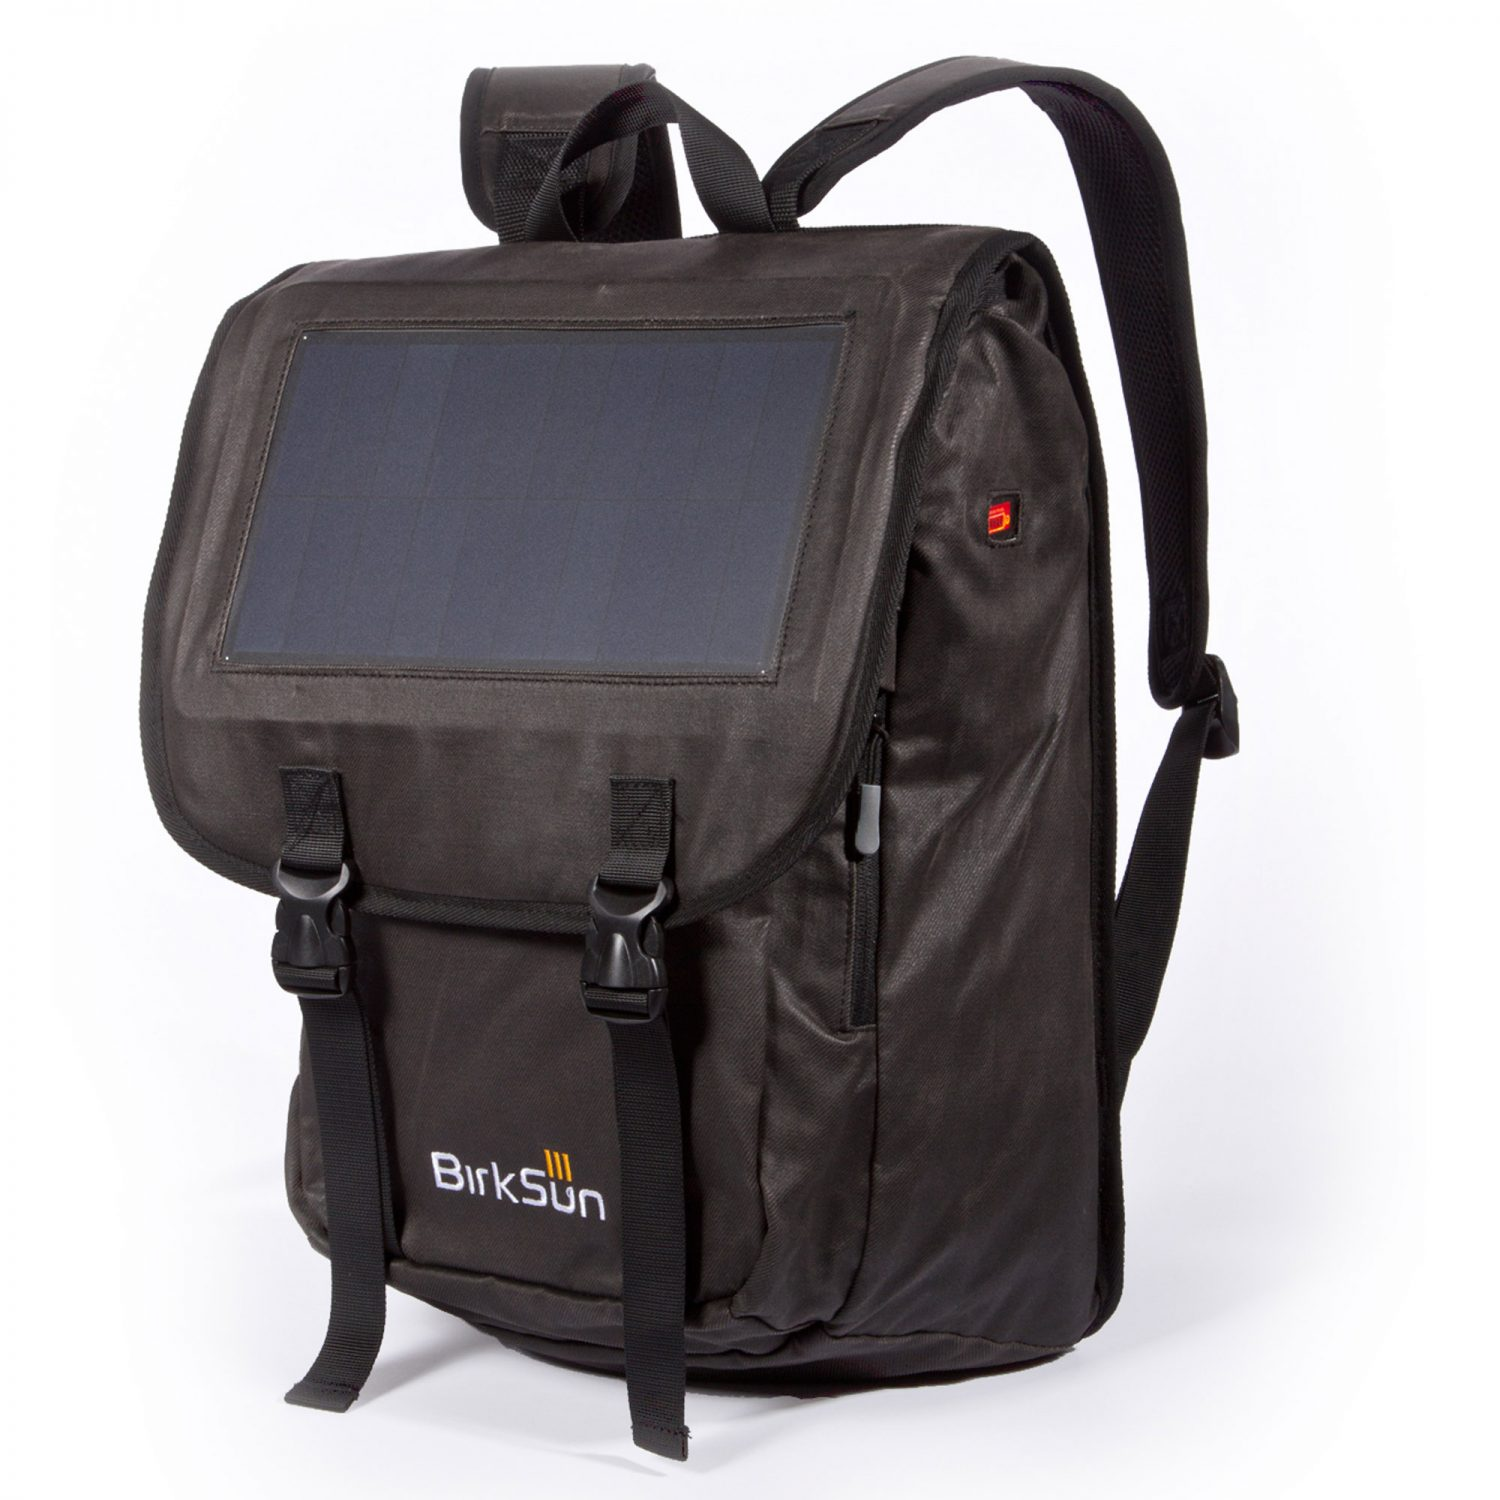 12 Days of Back-to-School Giveaways! Day 3: BirkSun solar backpack!